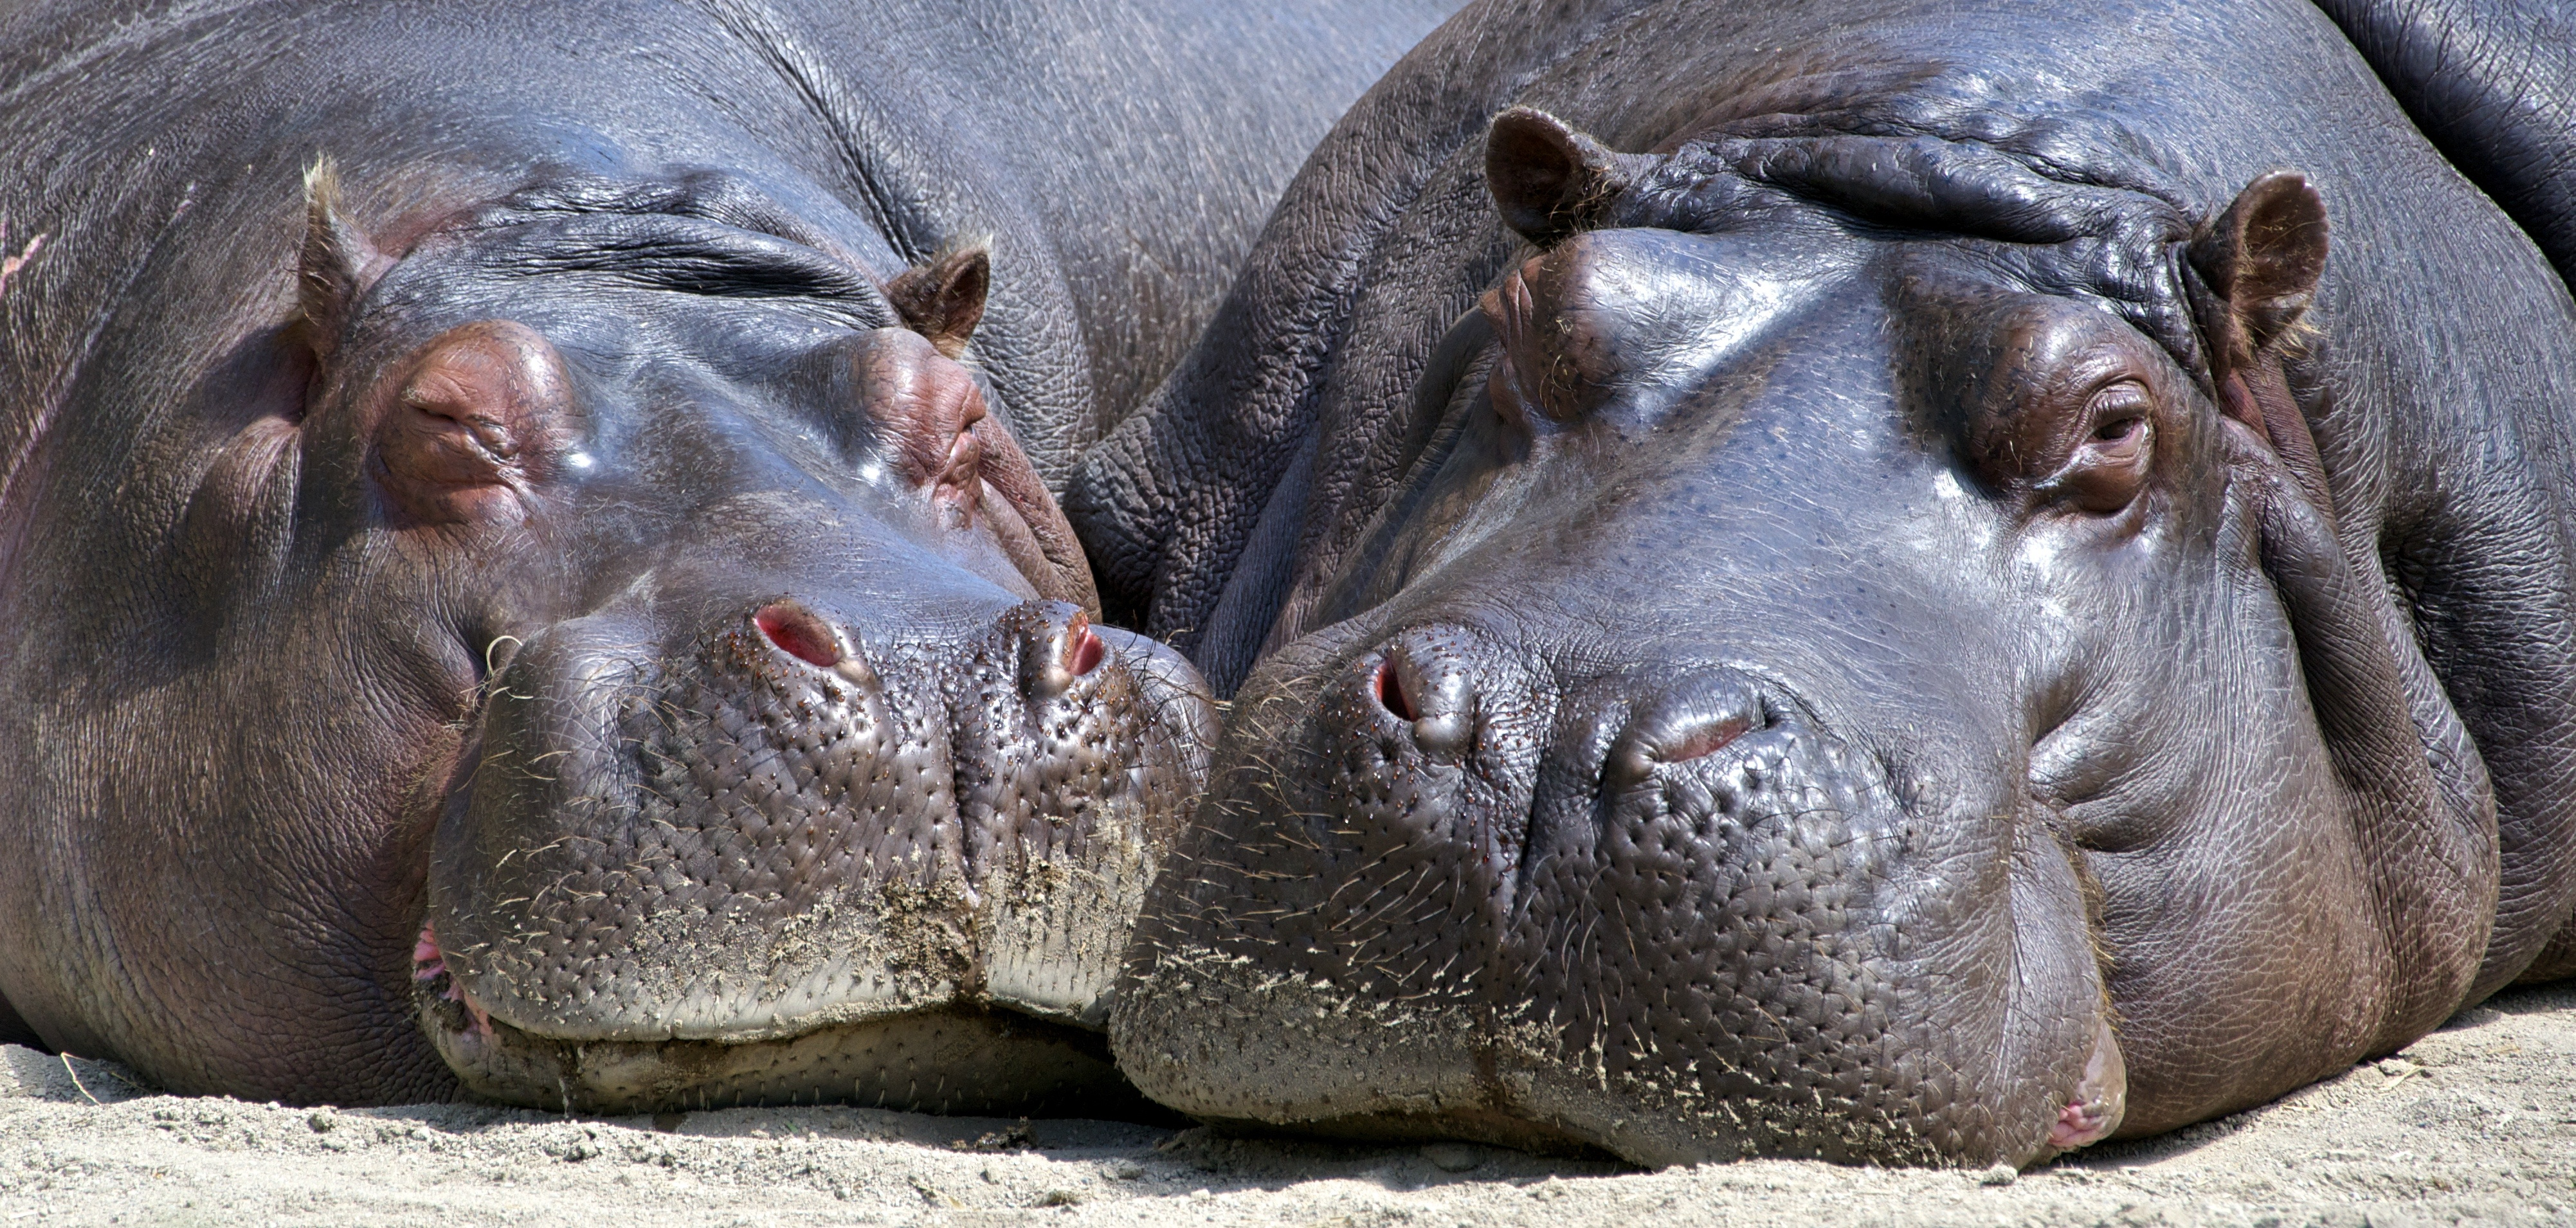 hippo-mammal-wildlife-nature